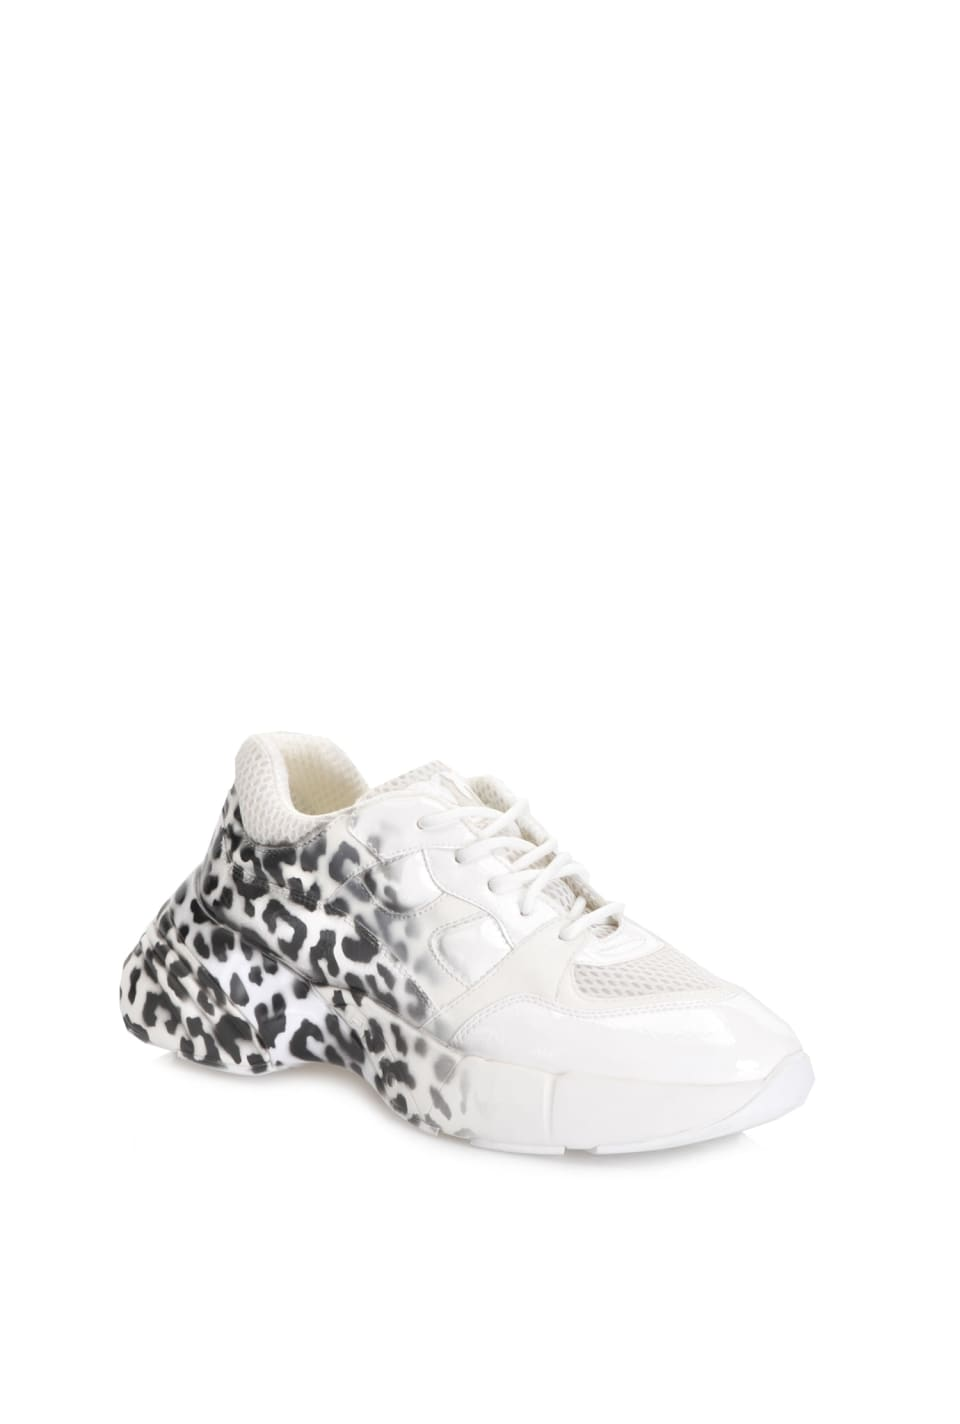 Sneakers in shaded animal print